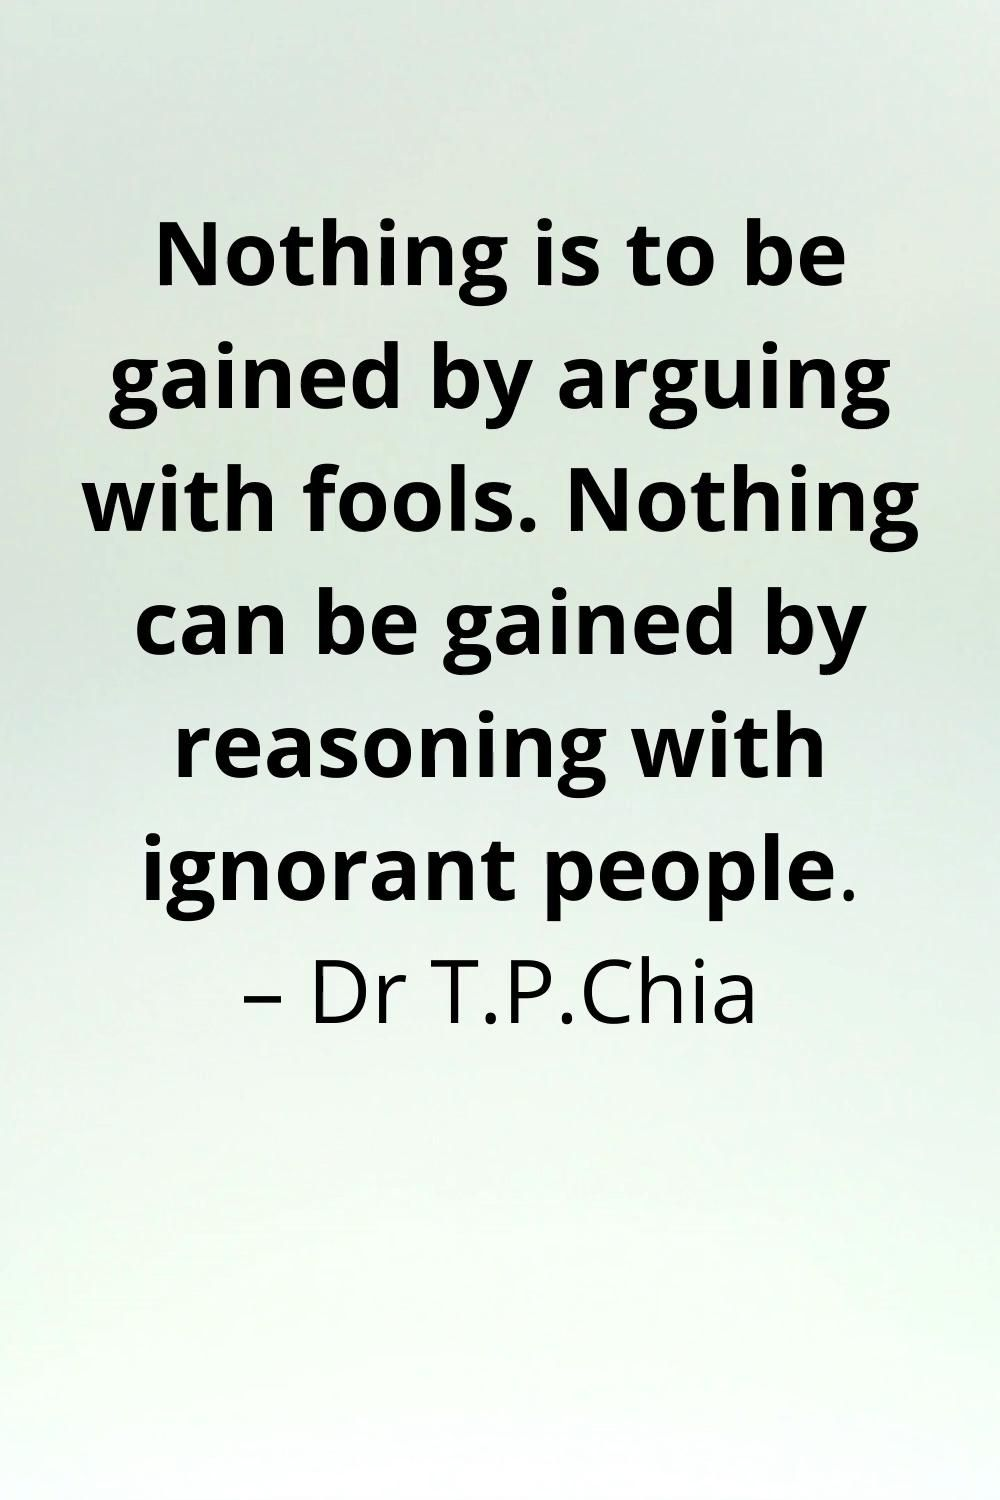 Don't argue with fools